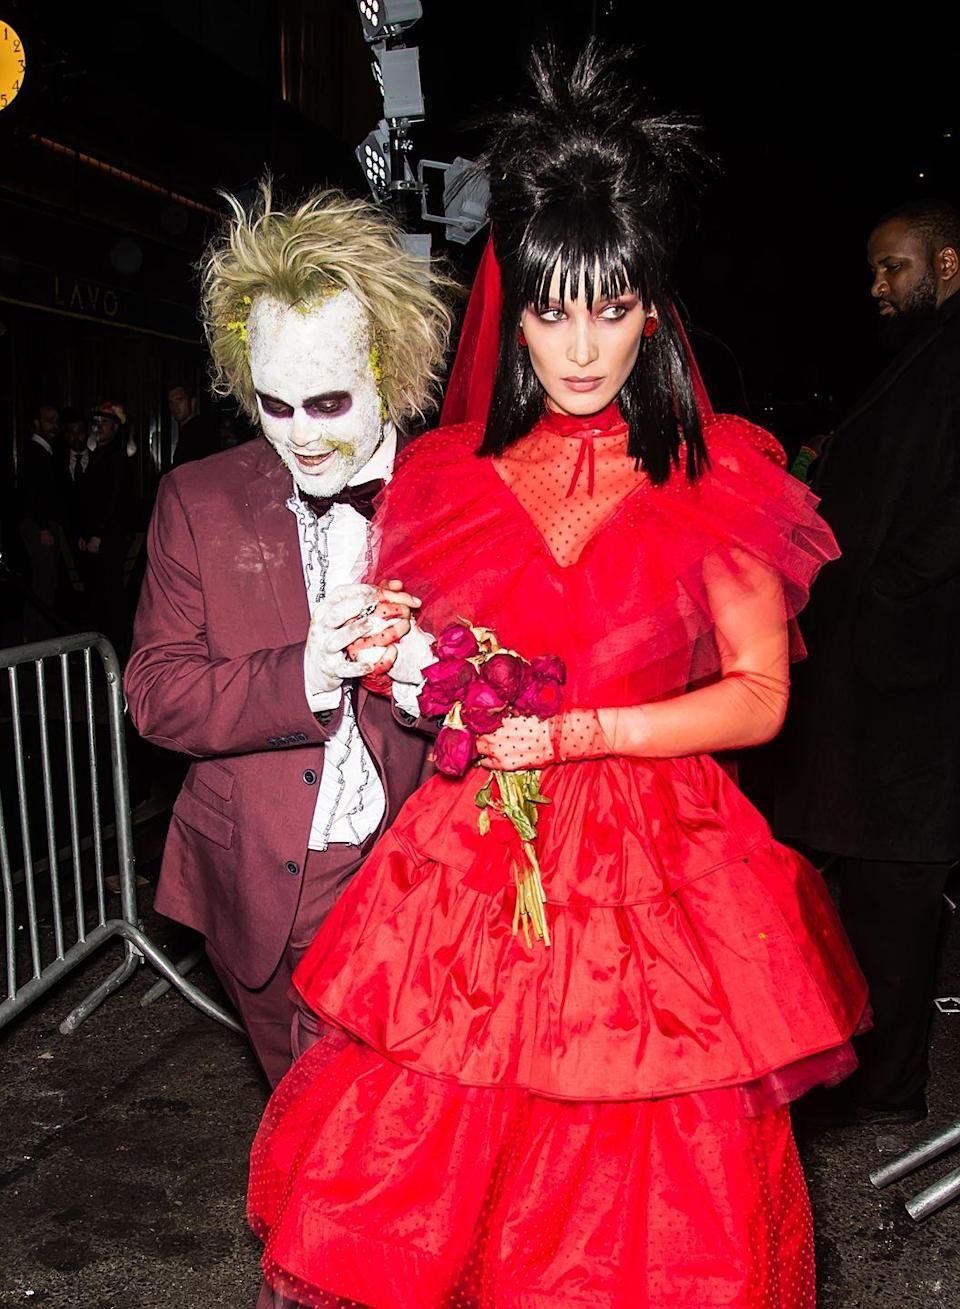 <p>Singer The Weekend and model Bella Hadid strutted into Heidi Klum's 2018 Halloween shindig as characters from Tim Burton's 1988 movie <em>Beetlejuice</em>. The Weeknd went all-out as Beetlejuice himself, and Bella pulled off Winona Ryder's Lydia Deetz in a perfect red dress.</p>